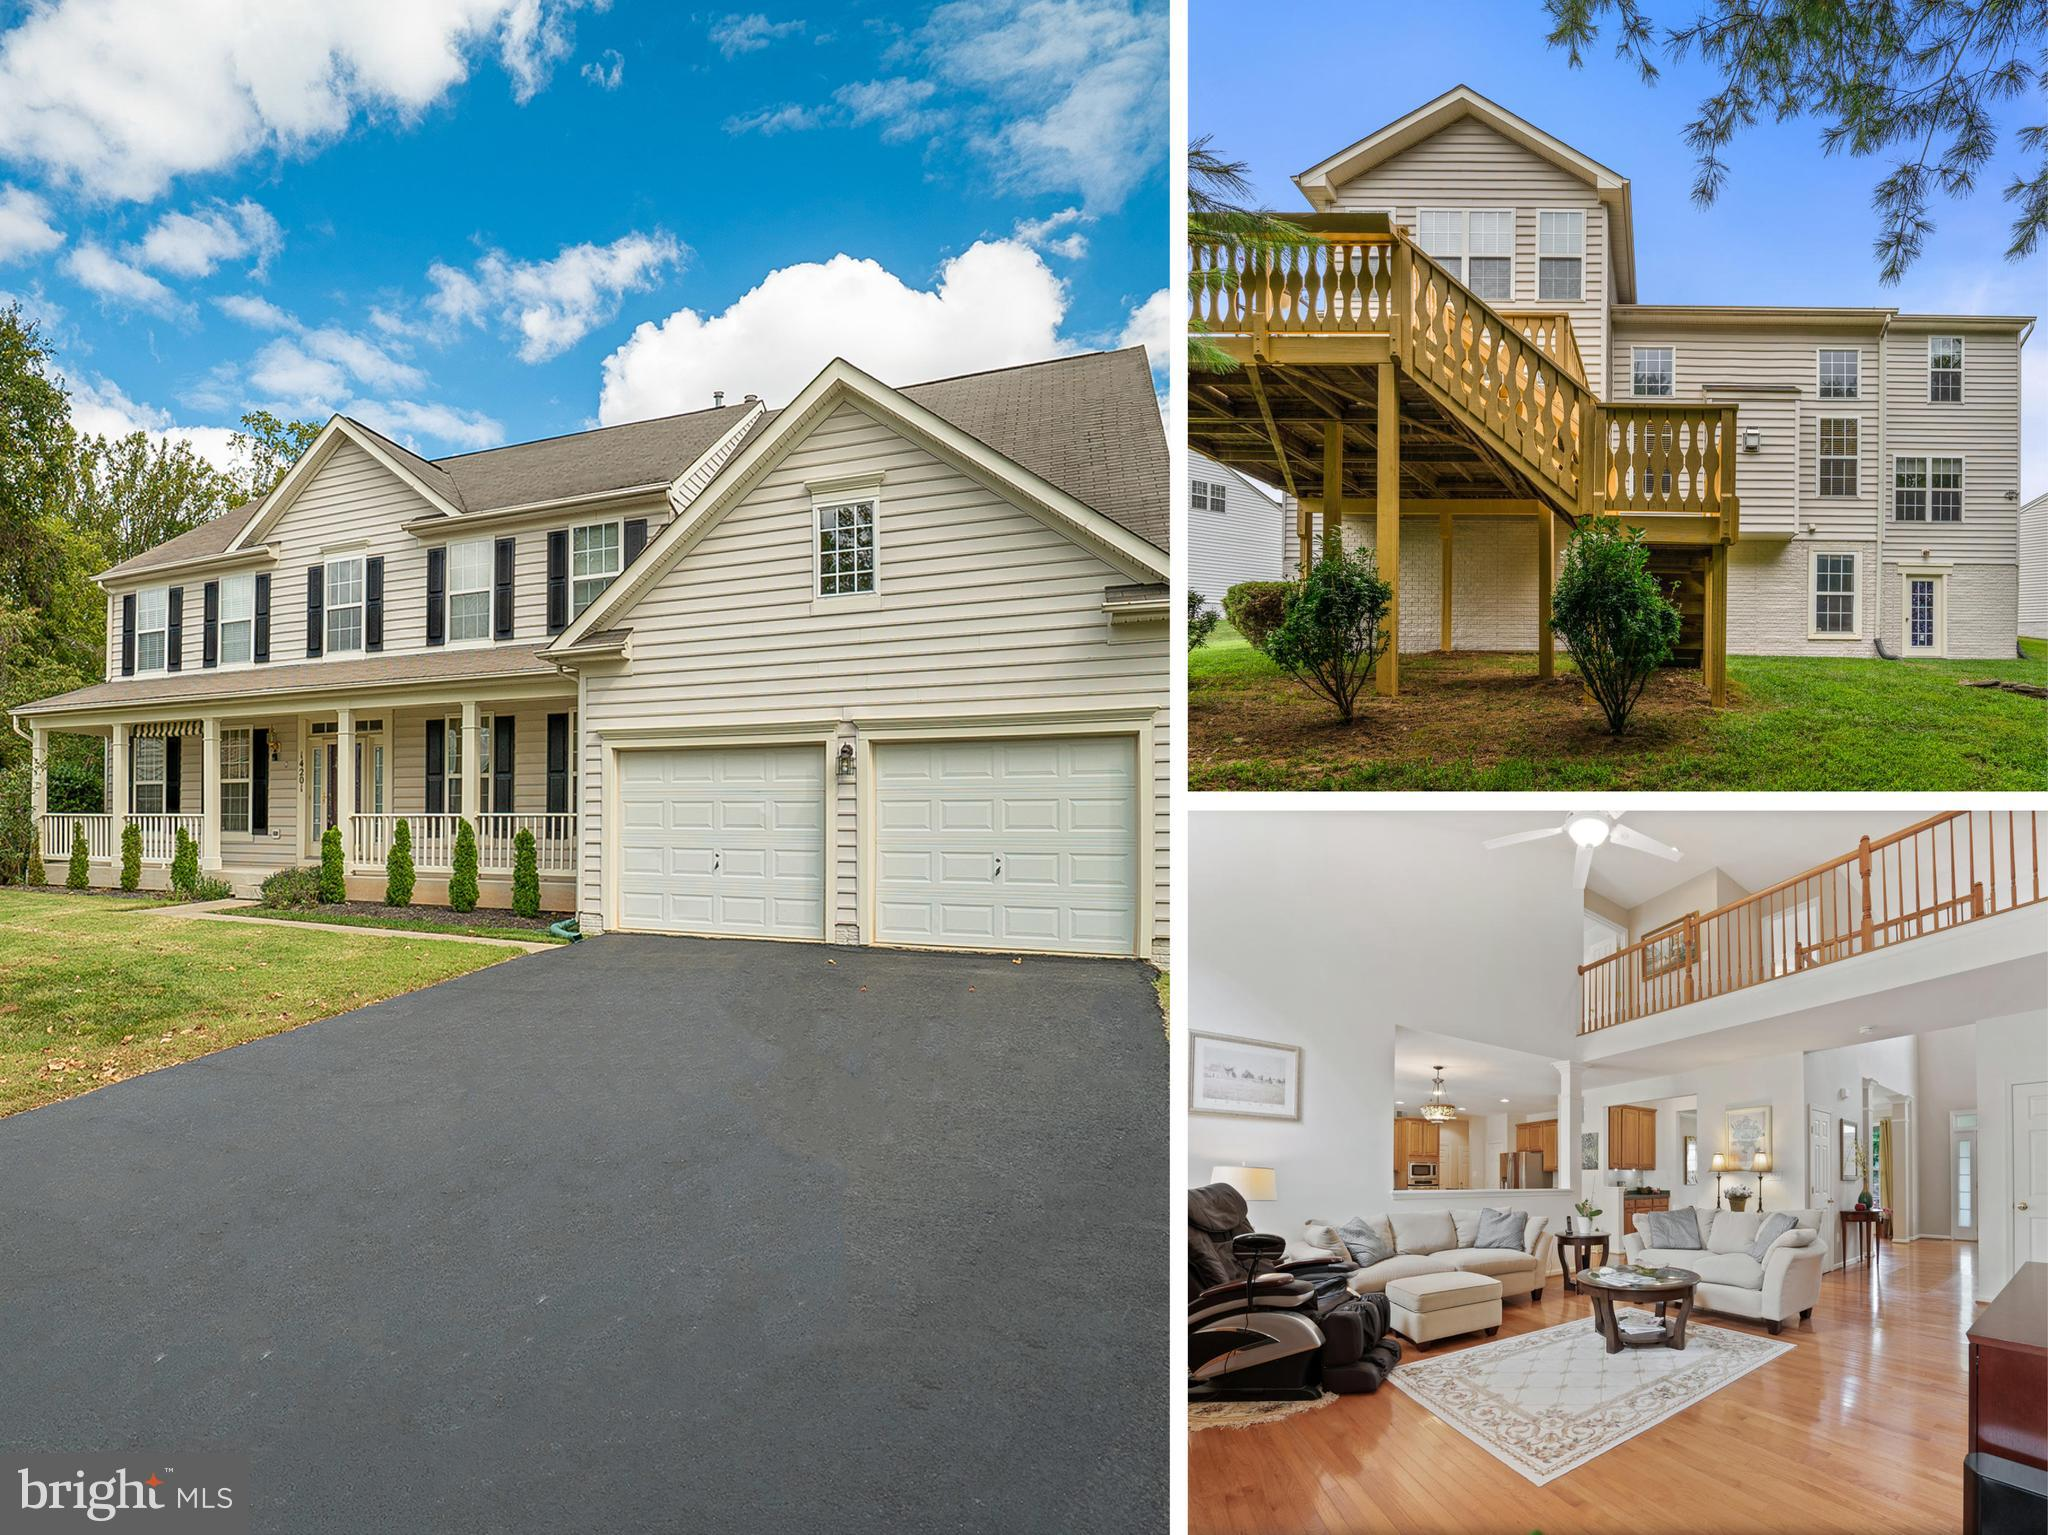 14201 BRASS WHEEL ROAD, BOYDS, MD 20841